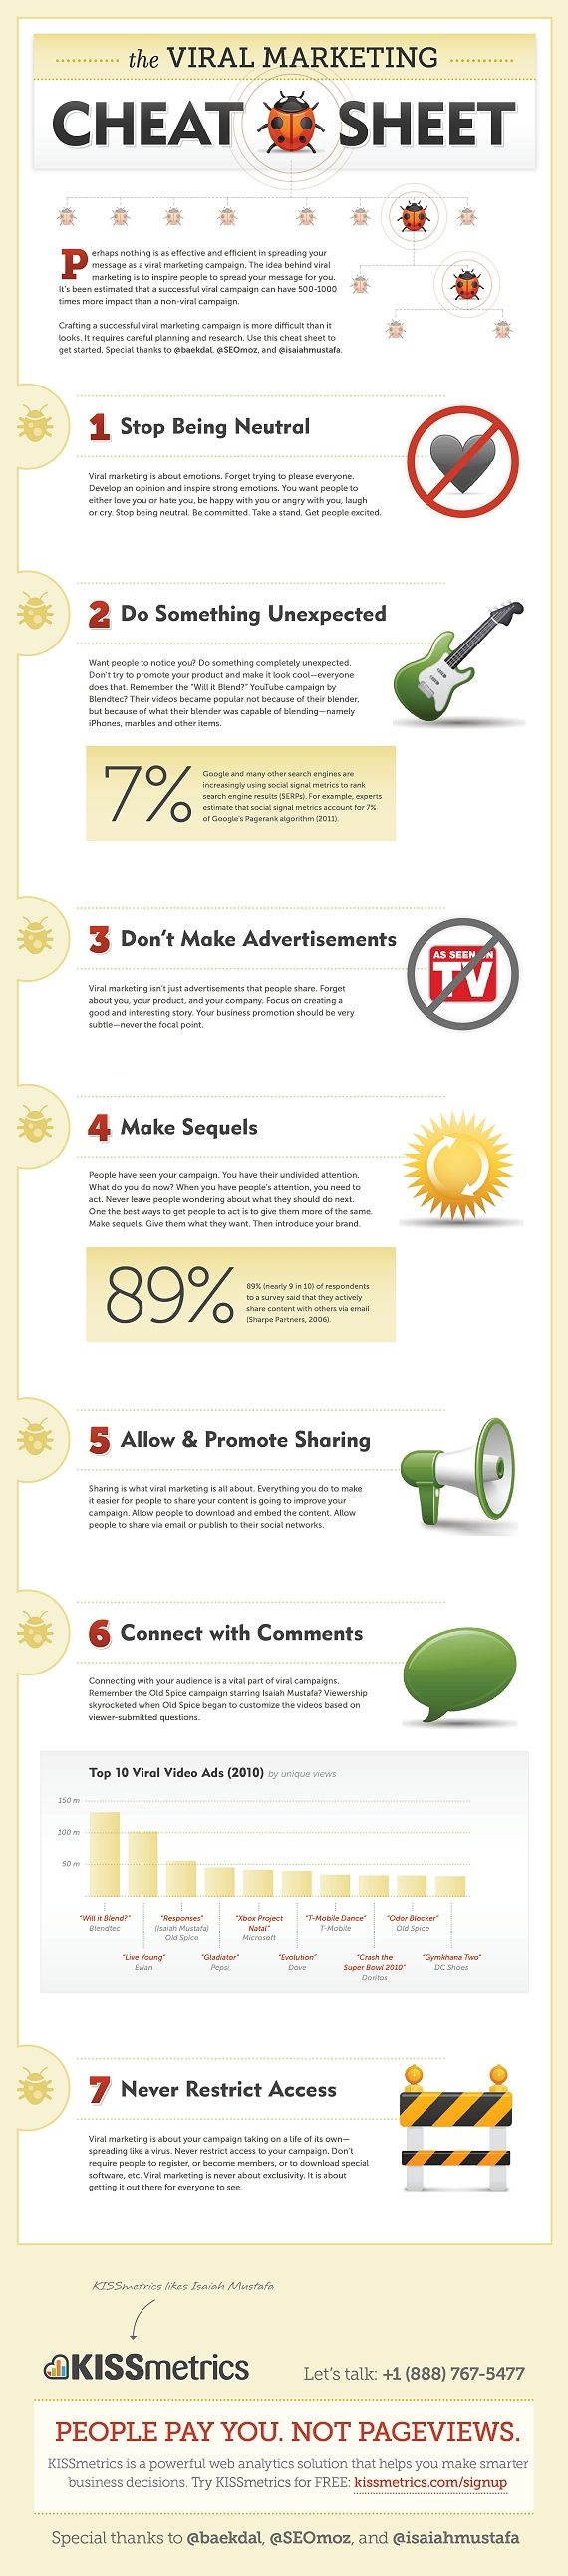 How to create a viral marketing campaign [infographic] - Great Infographic by KISSmetrics! #2 & #7 are my favorites